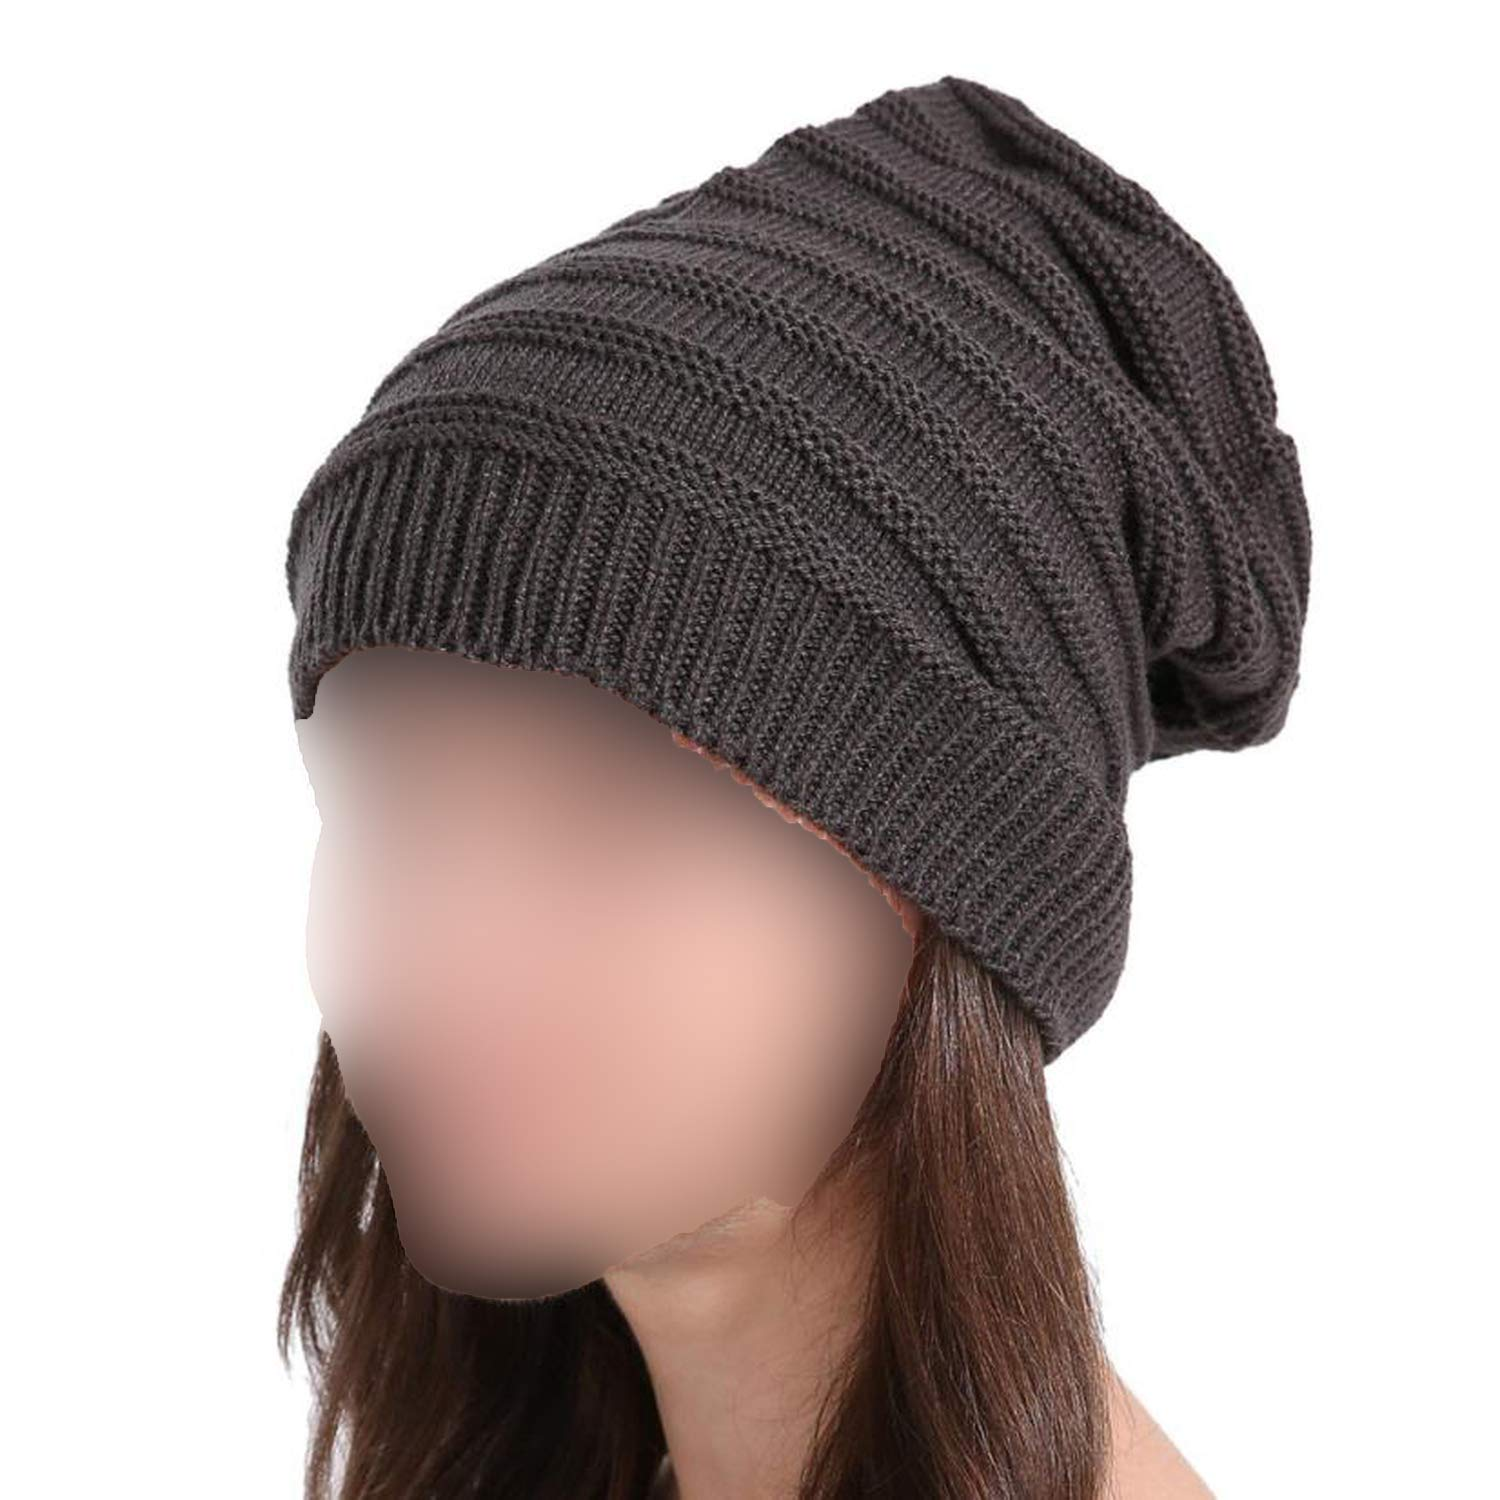 Unisex Warm Spring Autumn Cap Woman Wool Knit Beanie Cap Skull Hats for Women